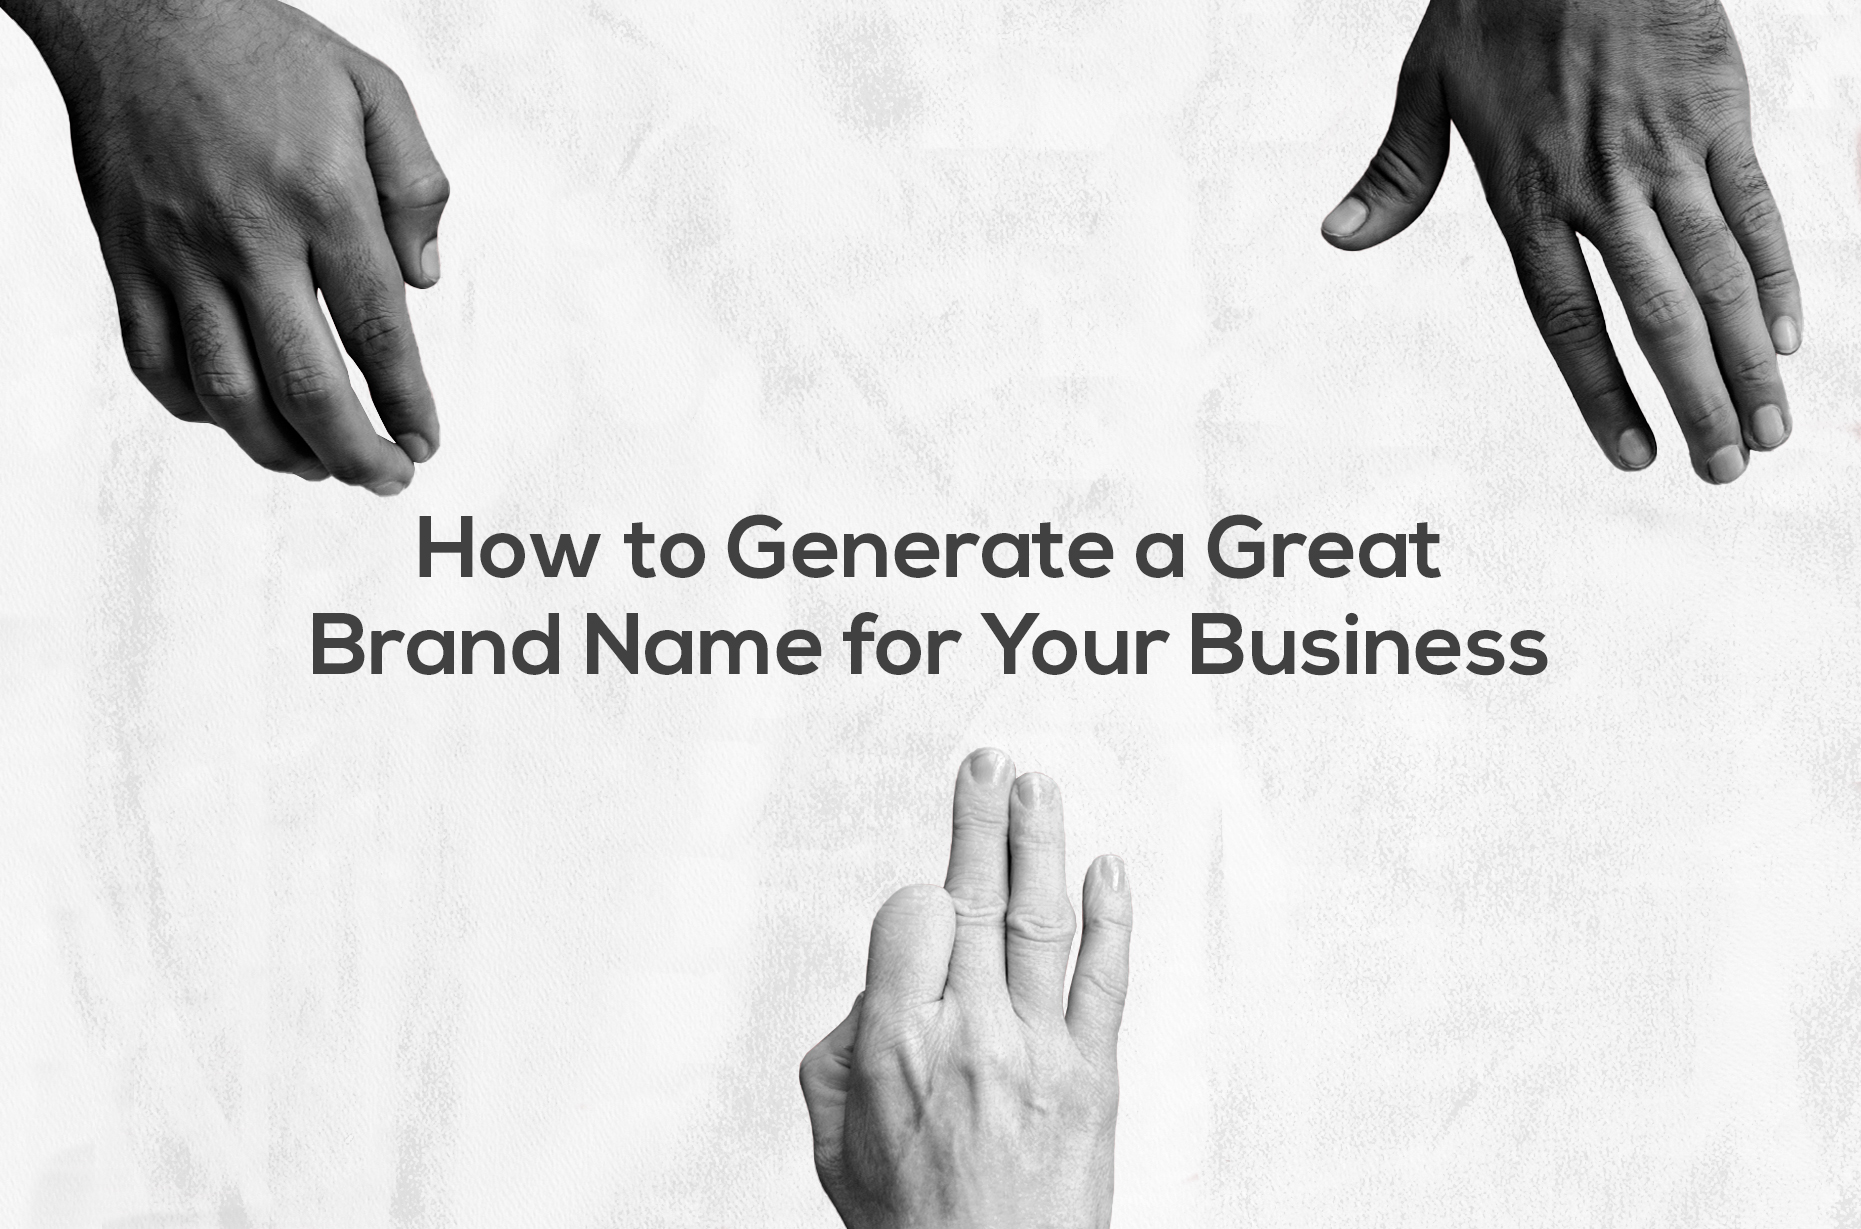 HOW TO GENERATE A GREAT BRAND NAME FOR YOUR BUSINESS